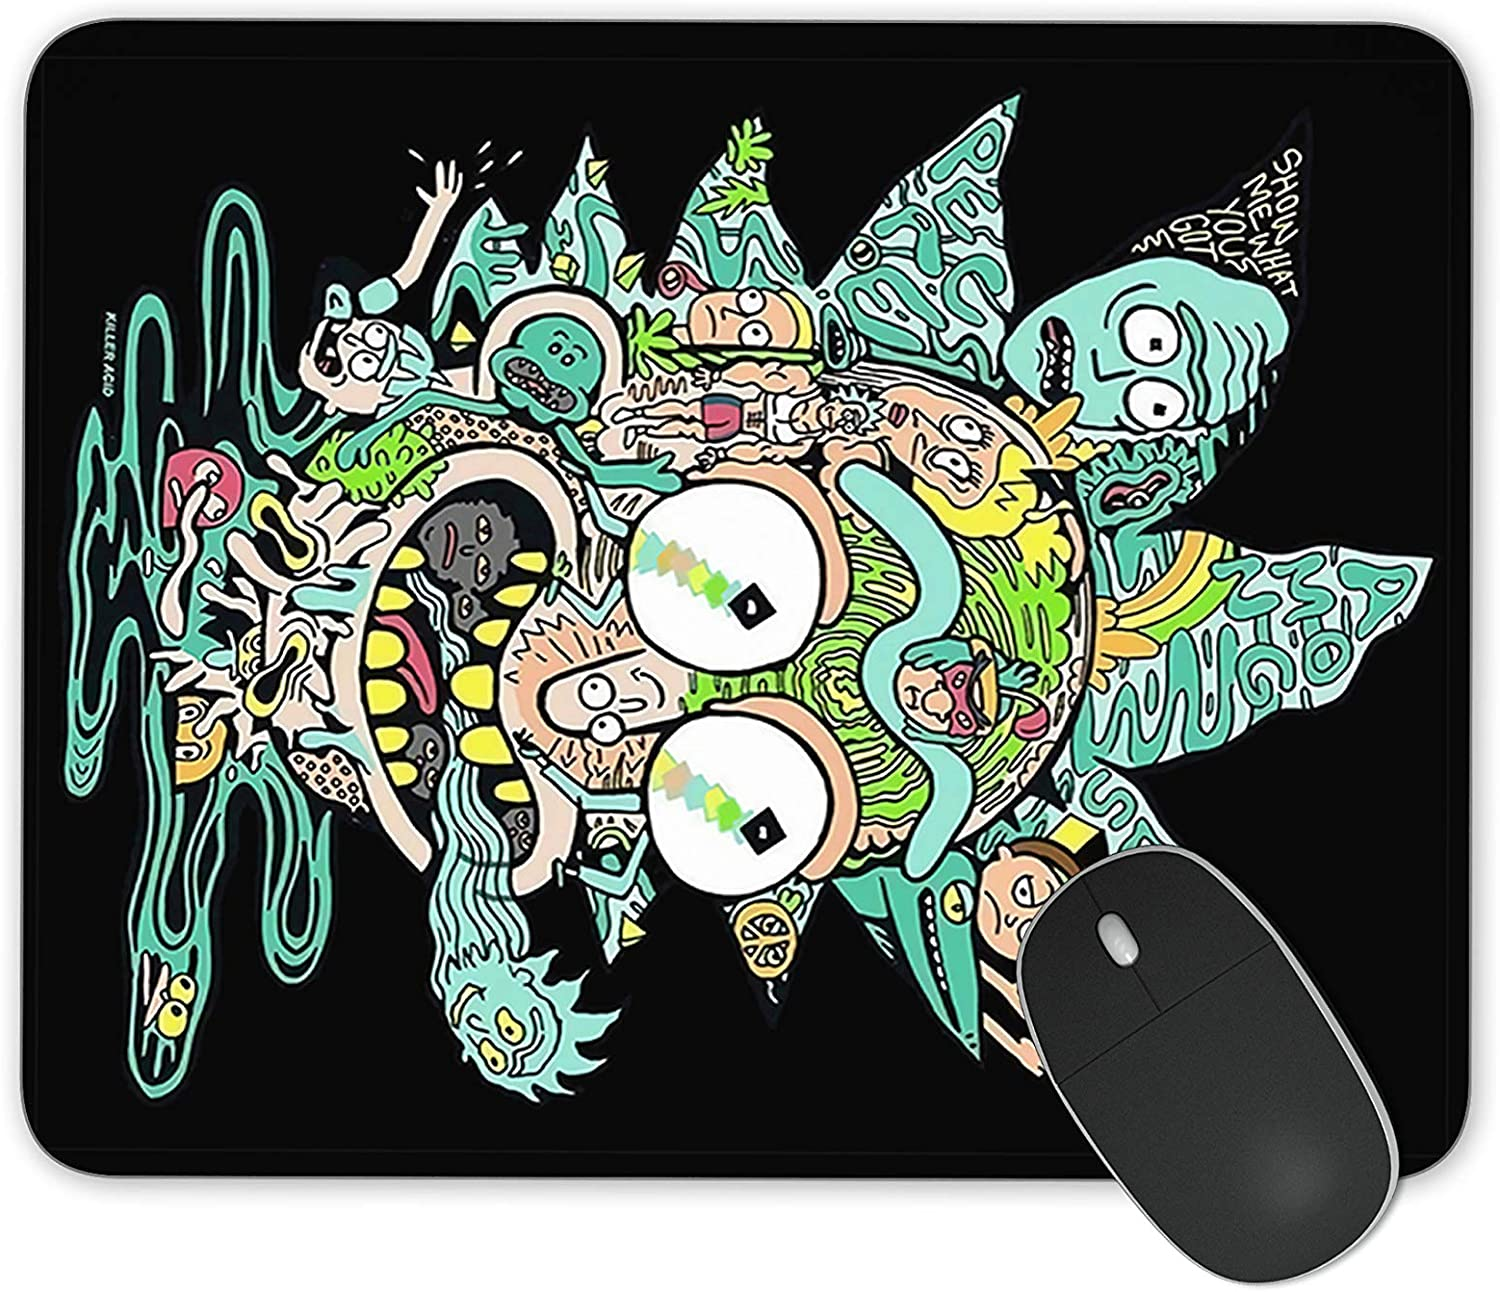 JNKPOAI Rick and Morty Series Game Mouse Pad Funny Rick and Morty Anti-Slip Mouse Pad Personalized The Officel Mouse Pad(Rick and Morty#1)